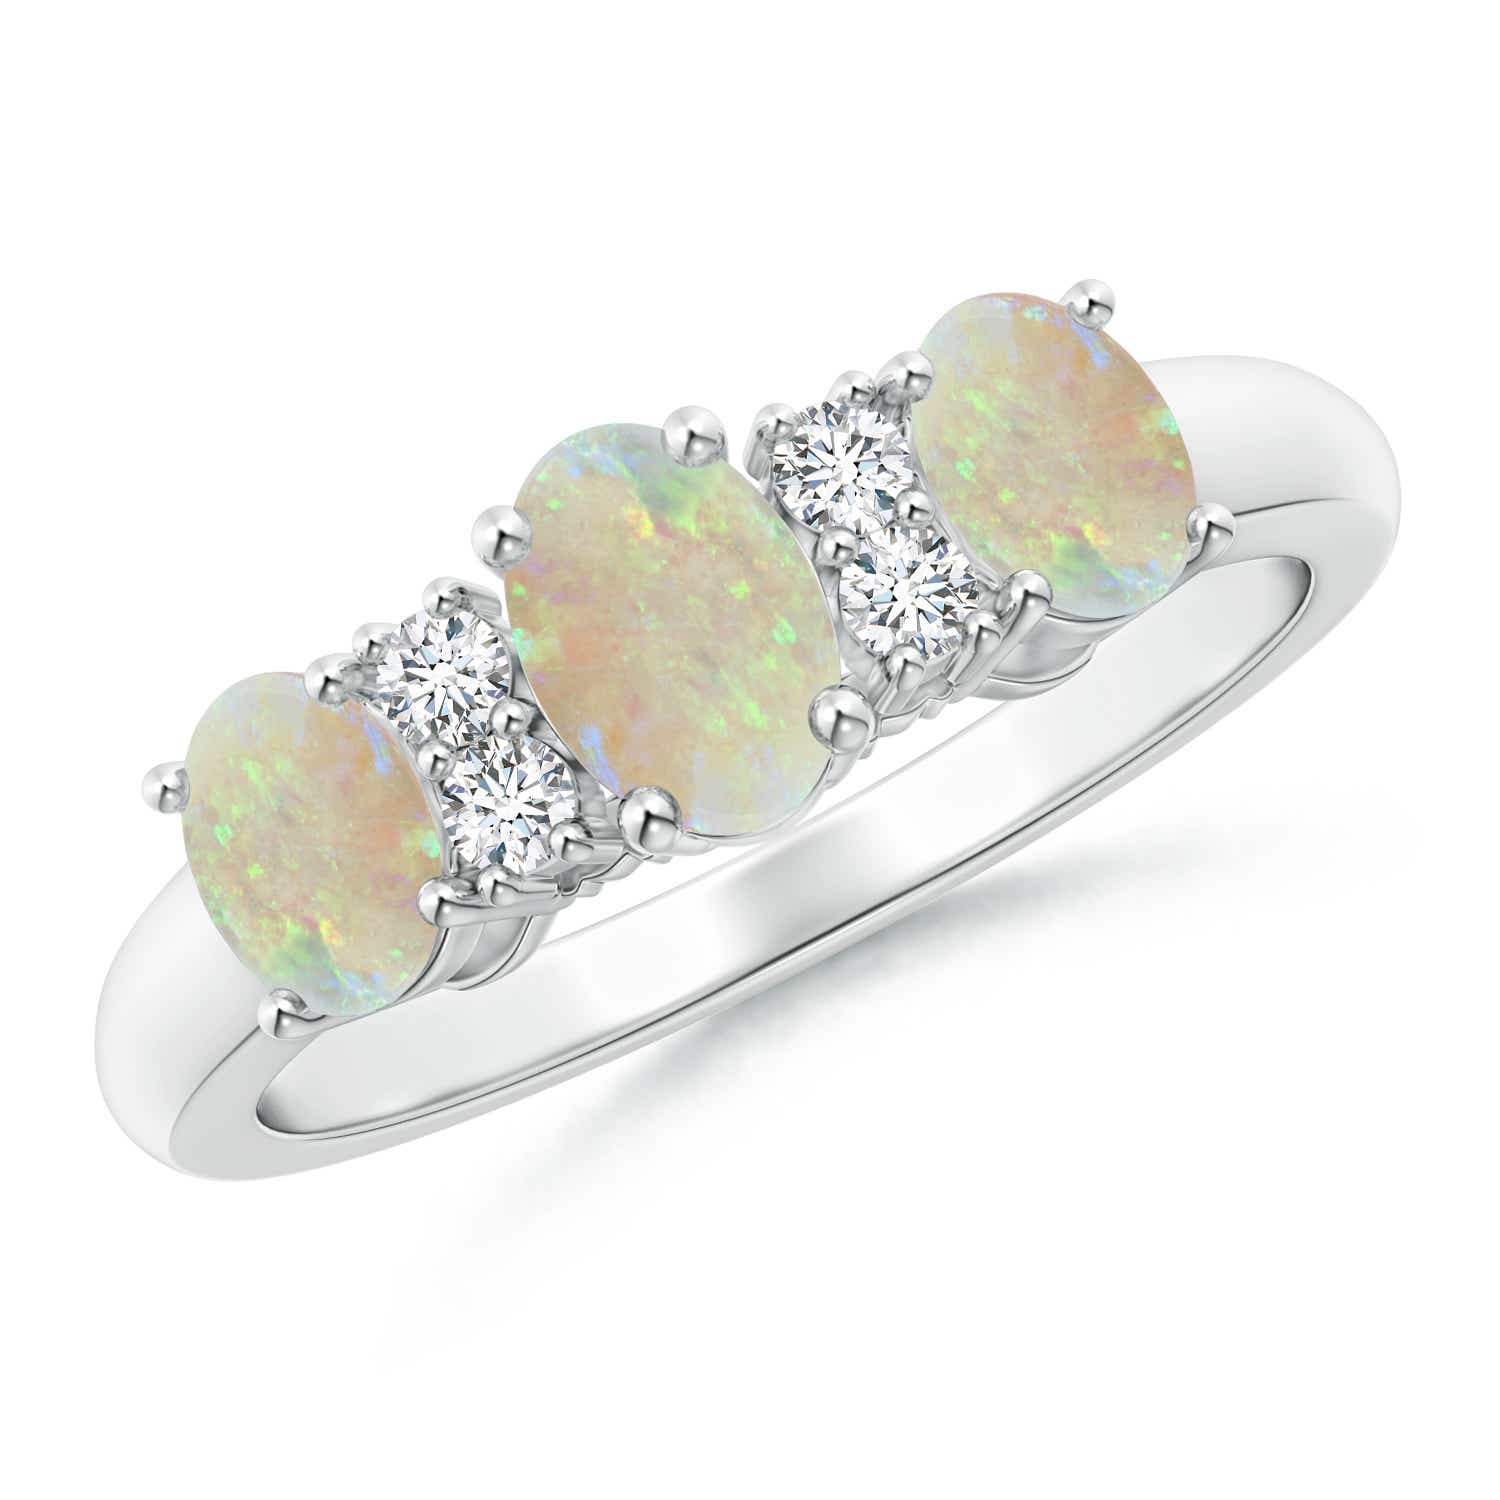 Oval Three Stone Opal Engagement Ring with Diamonds - Angara.com